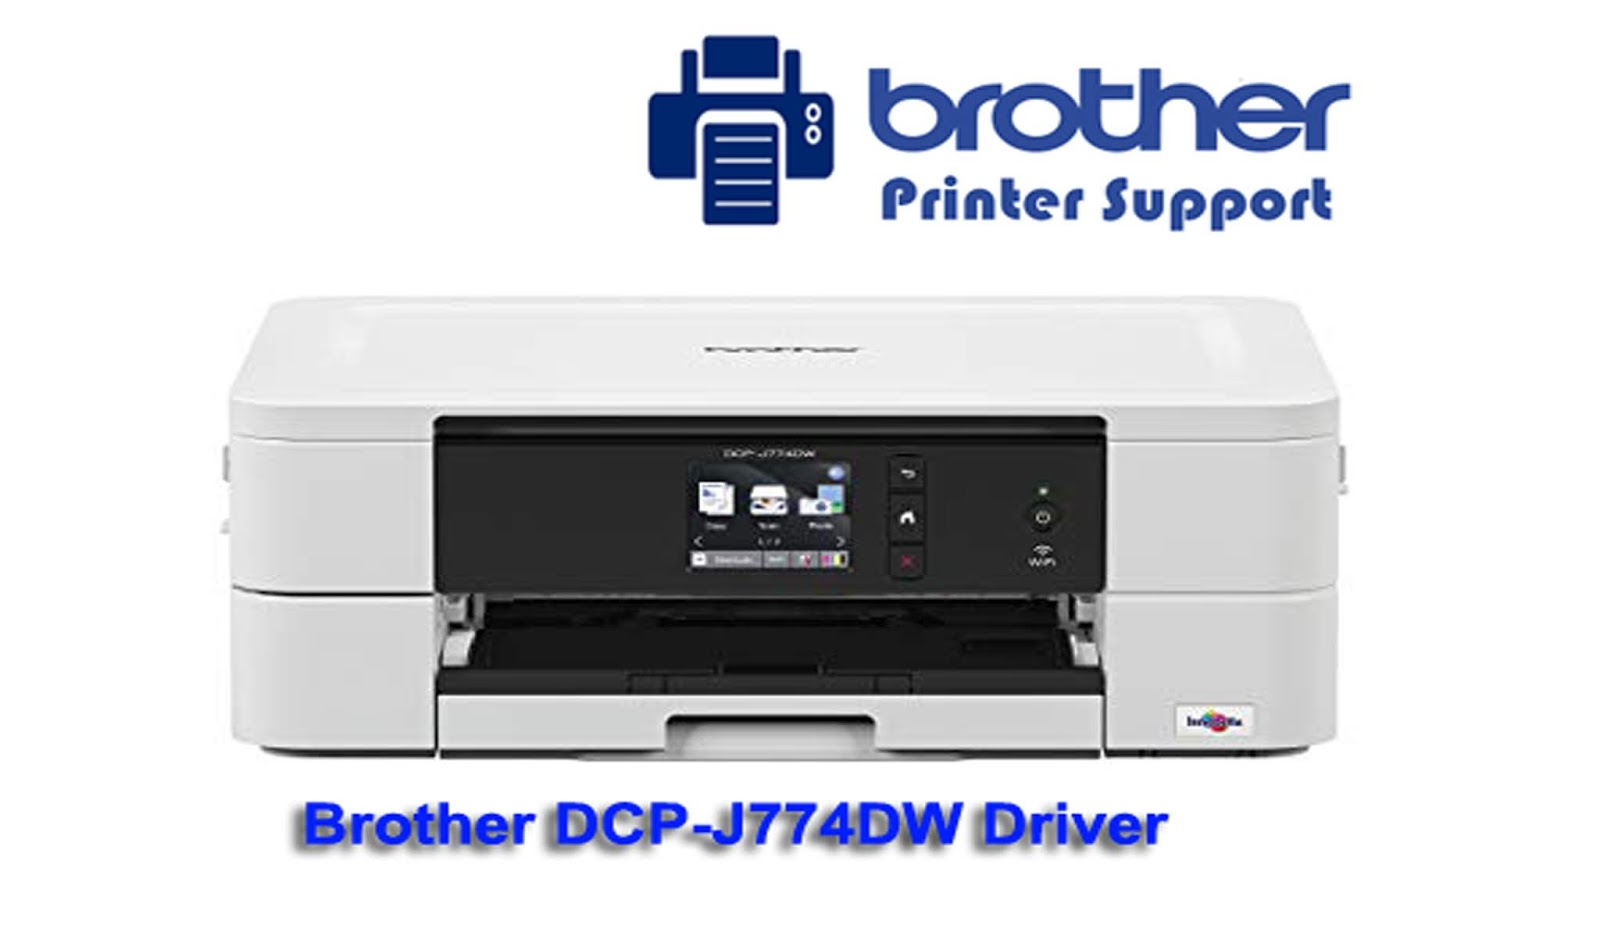 Brother DCP-j774DW Printer Drivers Software Downloads - Brother